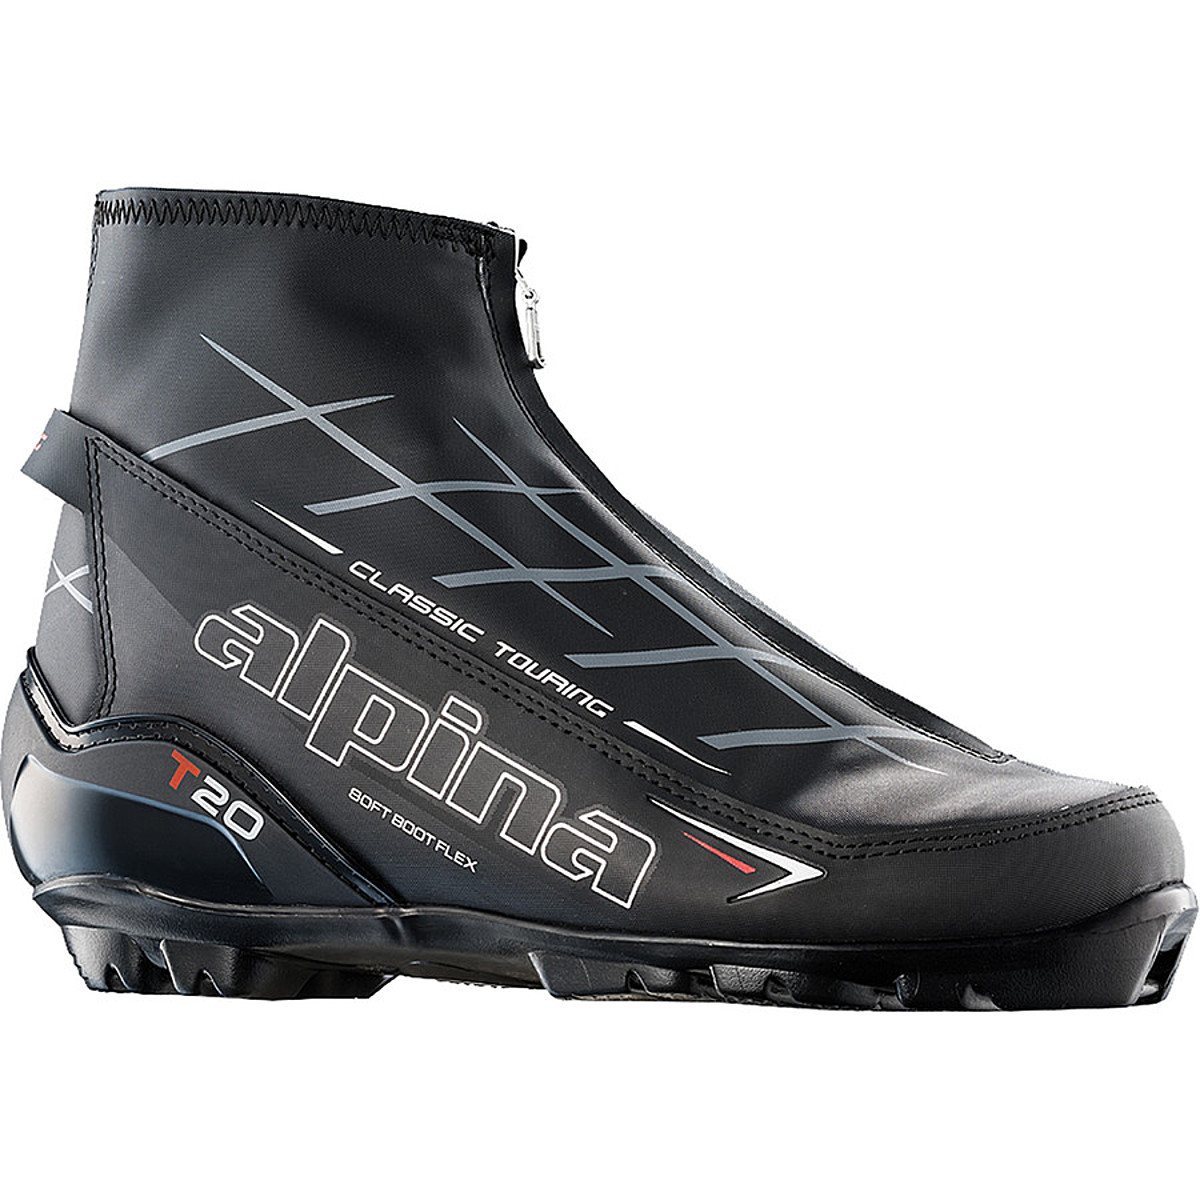 photo: Alpina T20 nordic touring boot